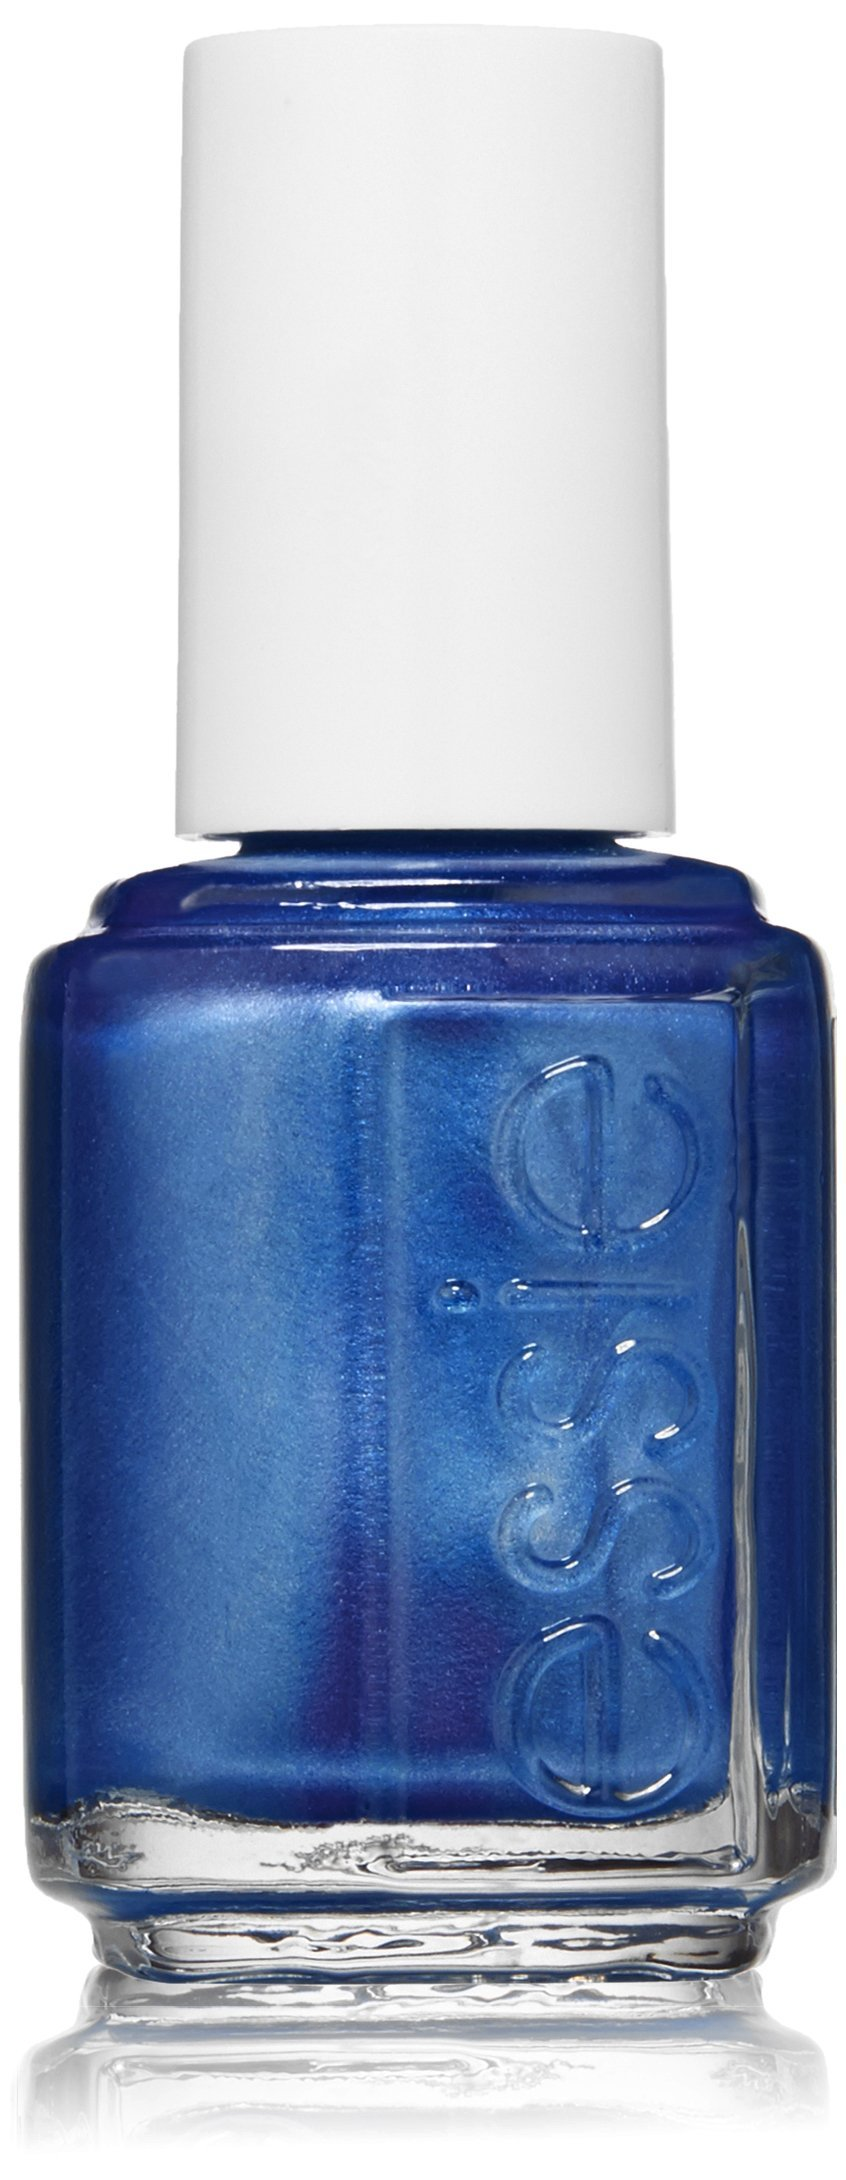 Amazon.com : essie Shimmer Brights Collection Nail Polish, All Hands ...